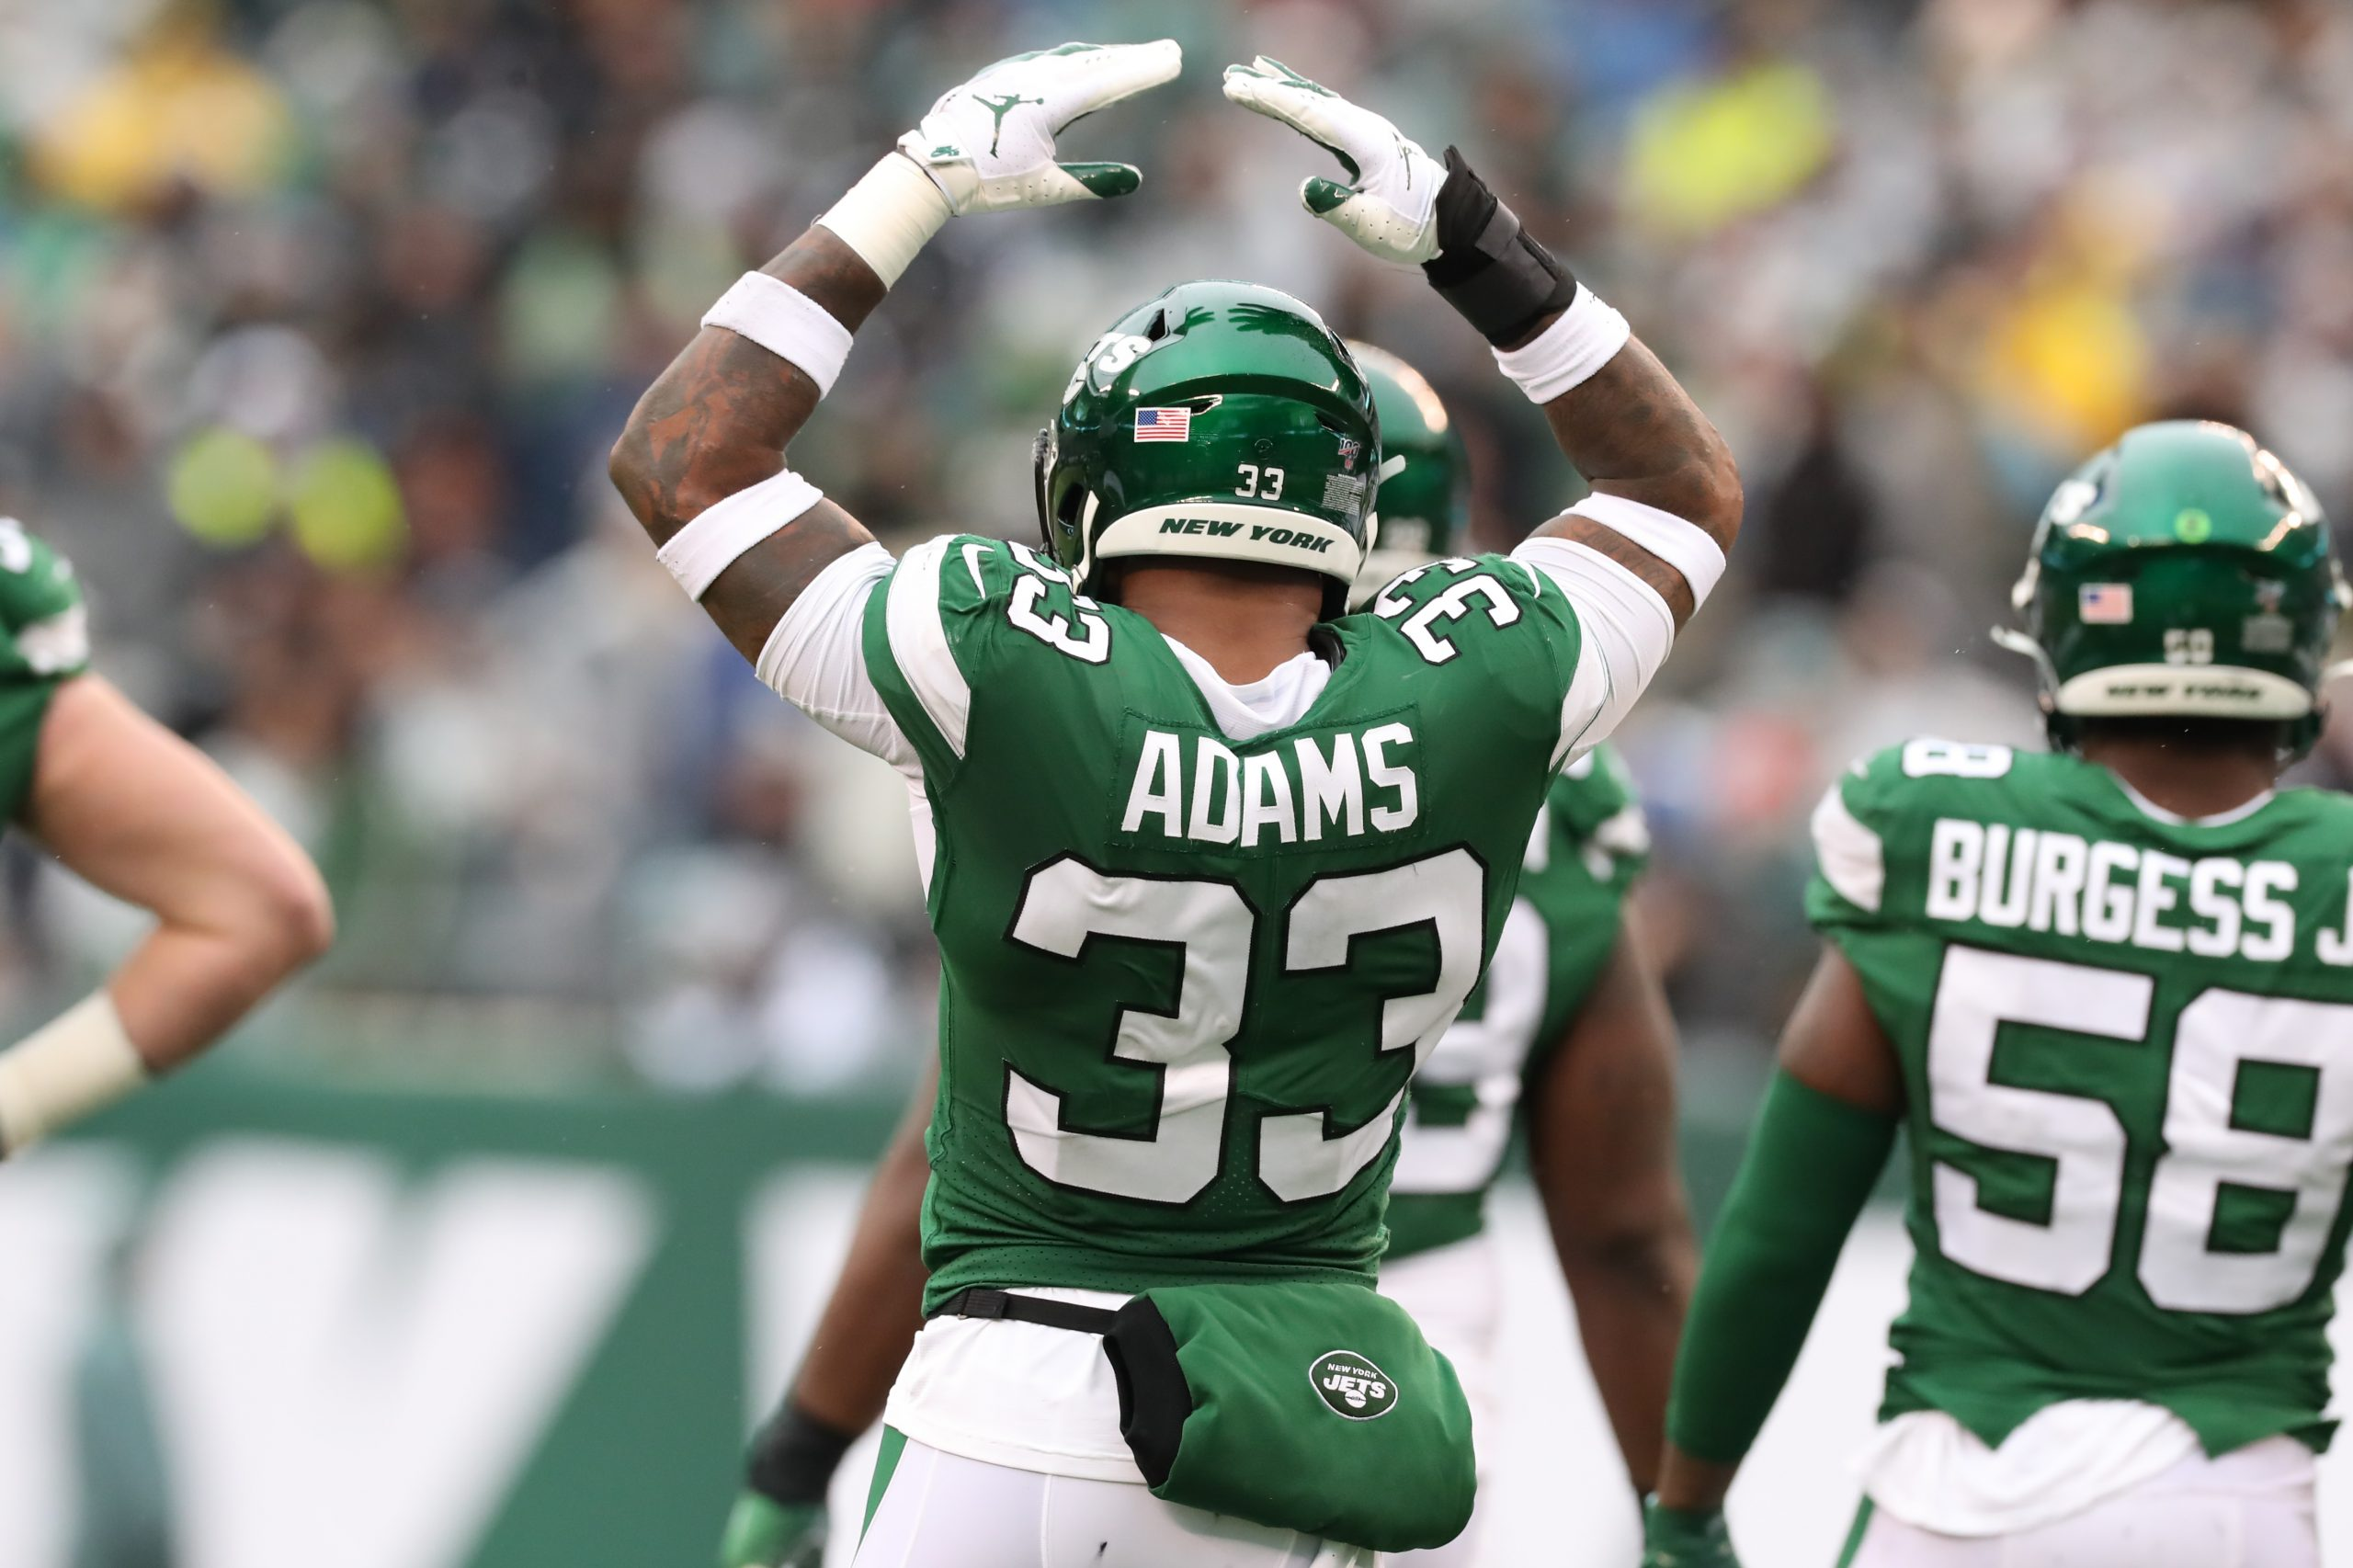 EAST RUTHERFORD, NJ - NOVEMBER 24: New York Jets strong safety Jamal Adams (33) during the National Football League game